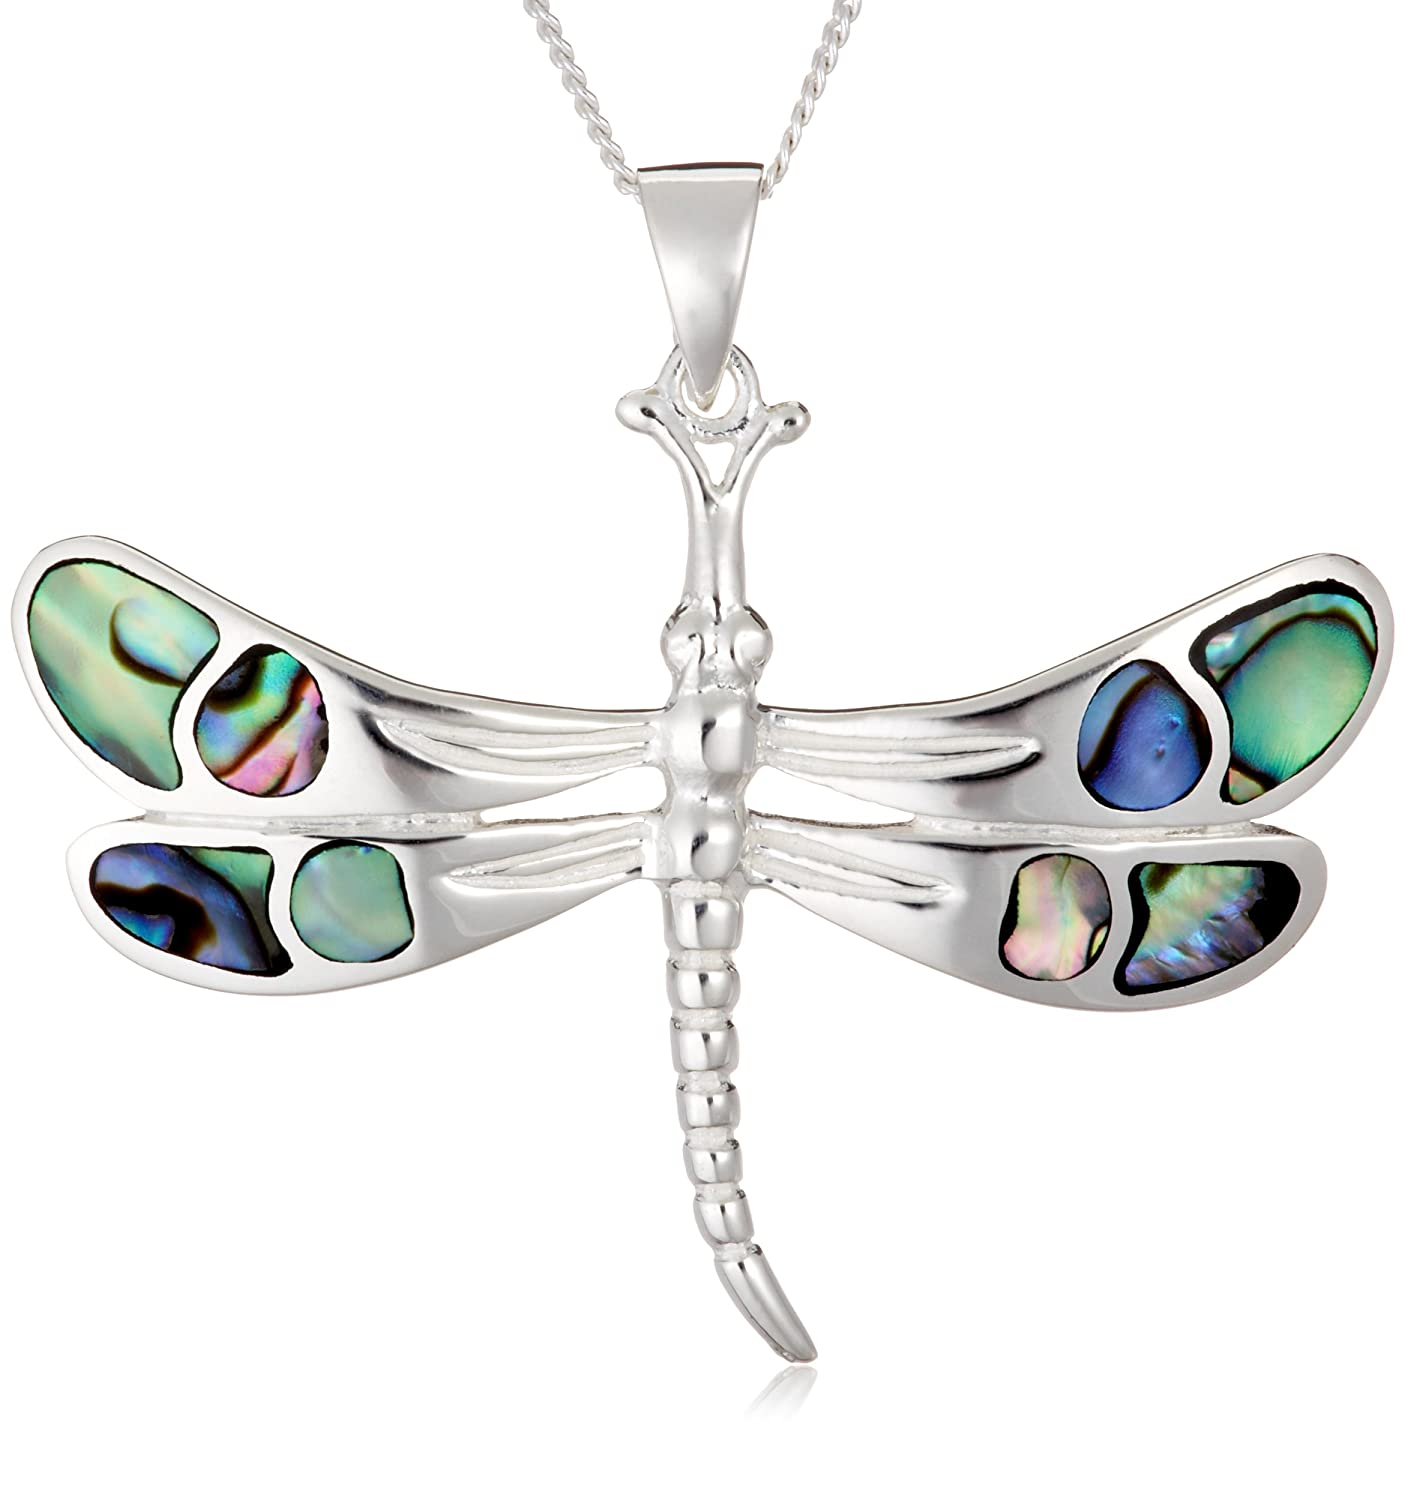 pendant company di necklace shop dragonfly landing ss capri